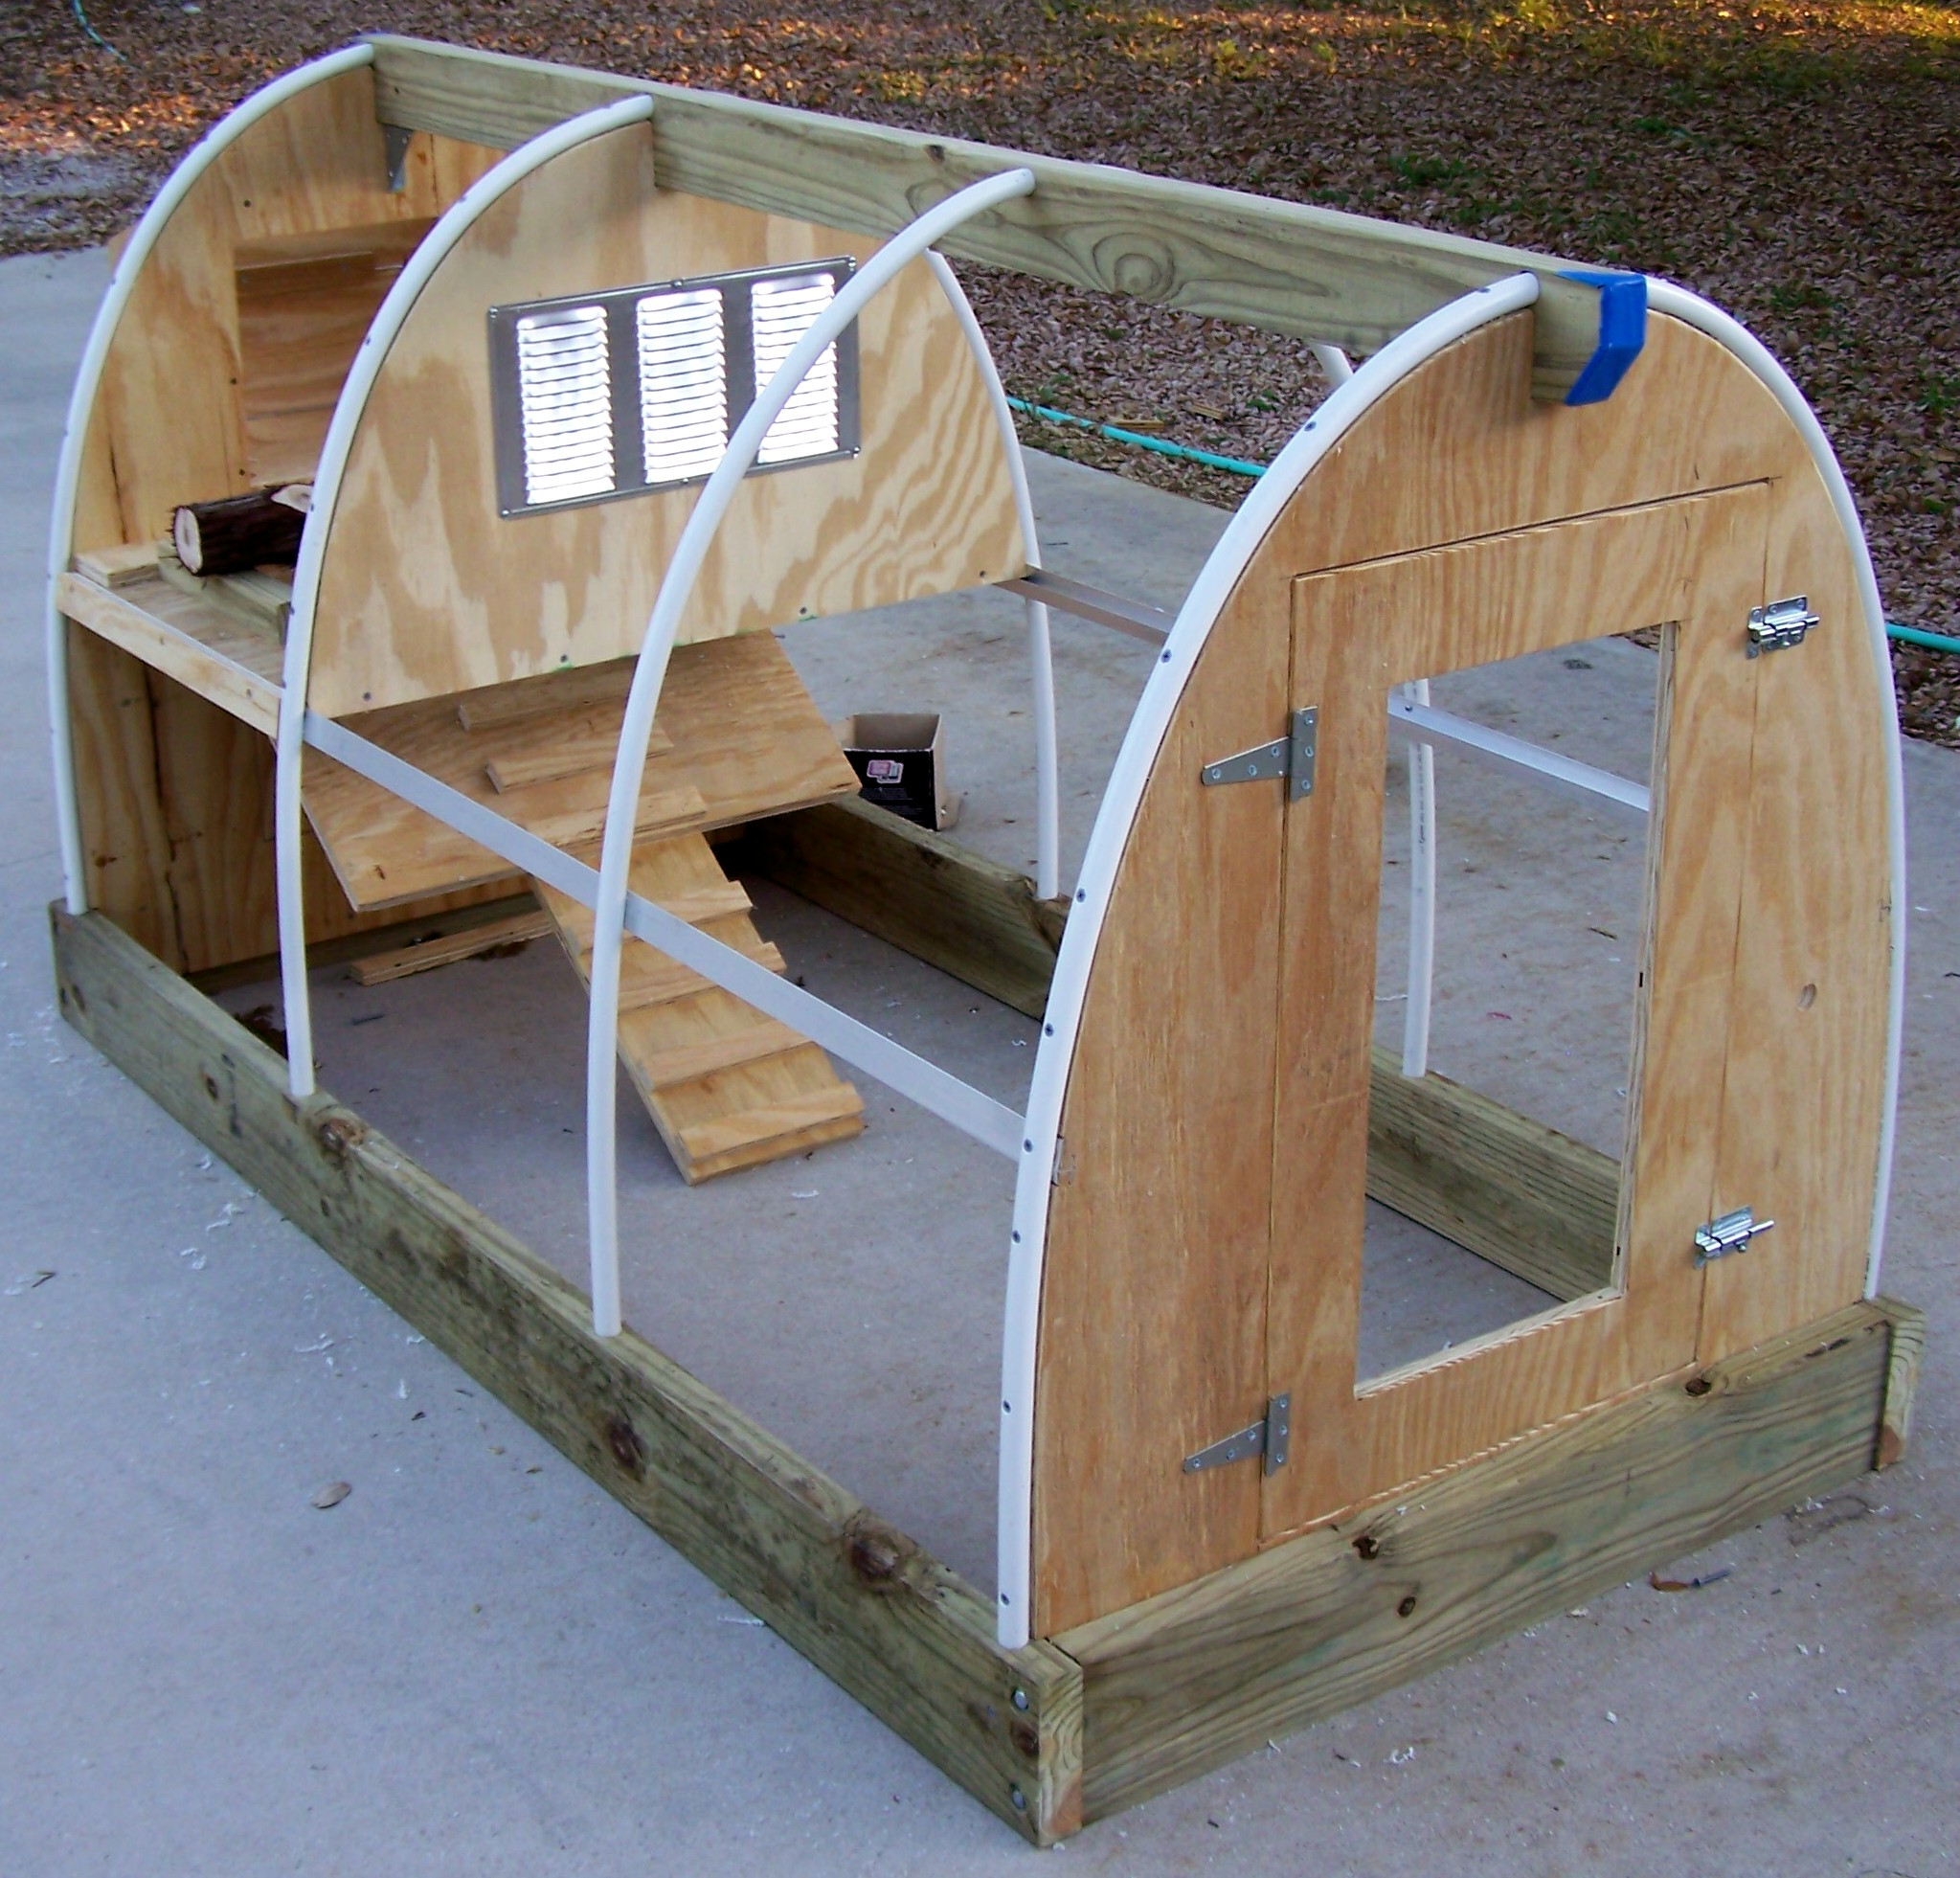 Mina pvc chicken coop plans for Poultry house plans for 100 chickens